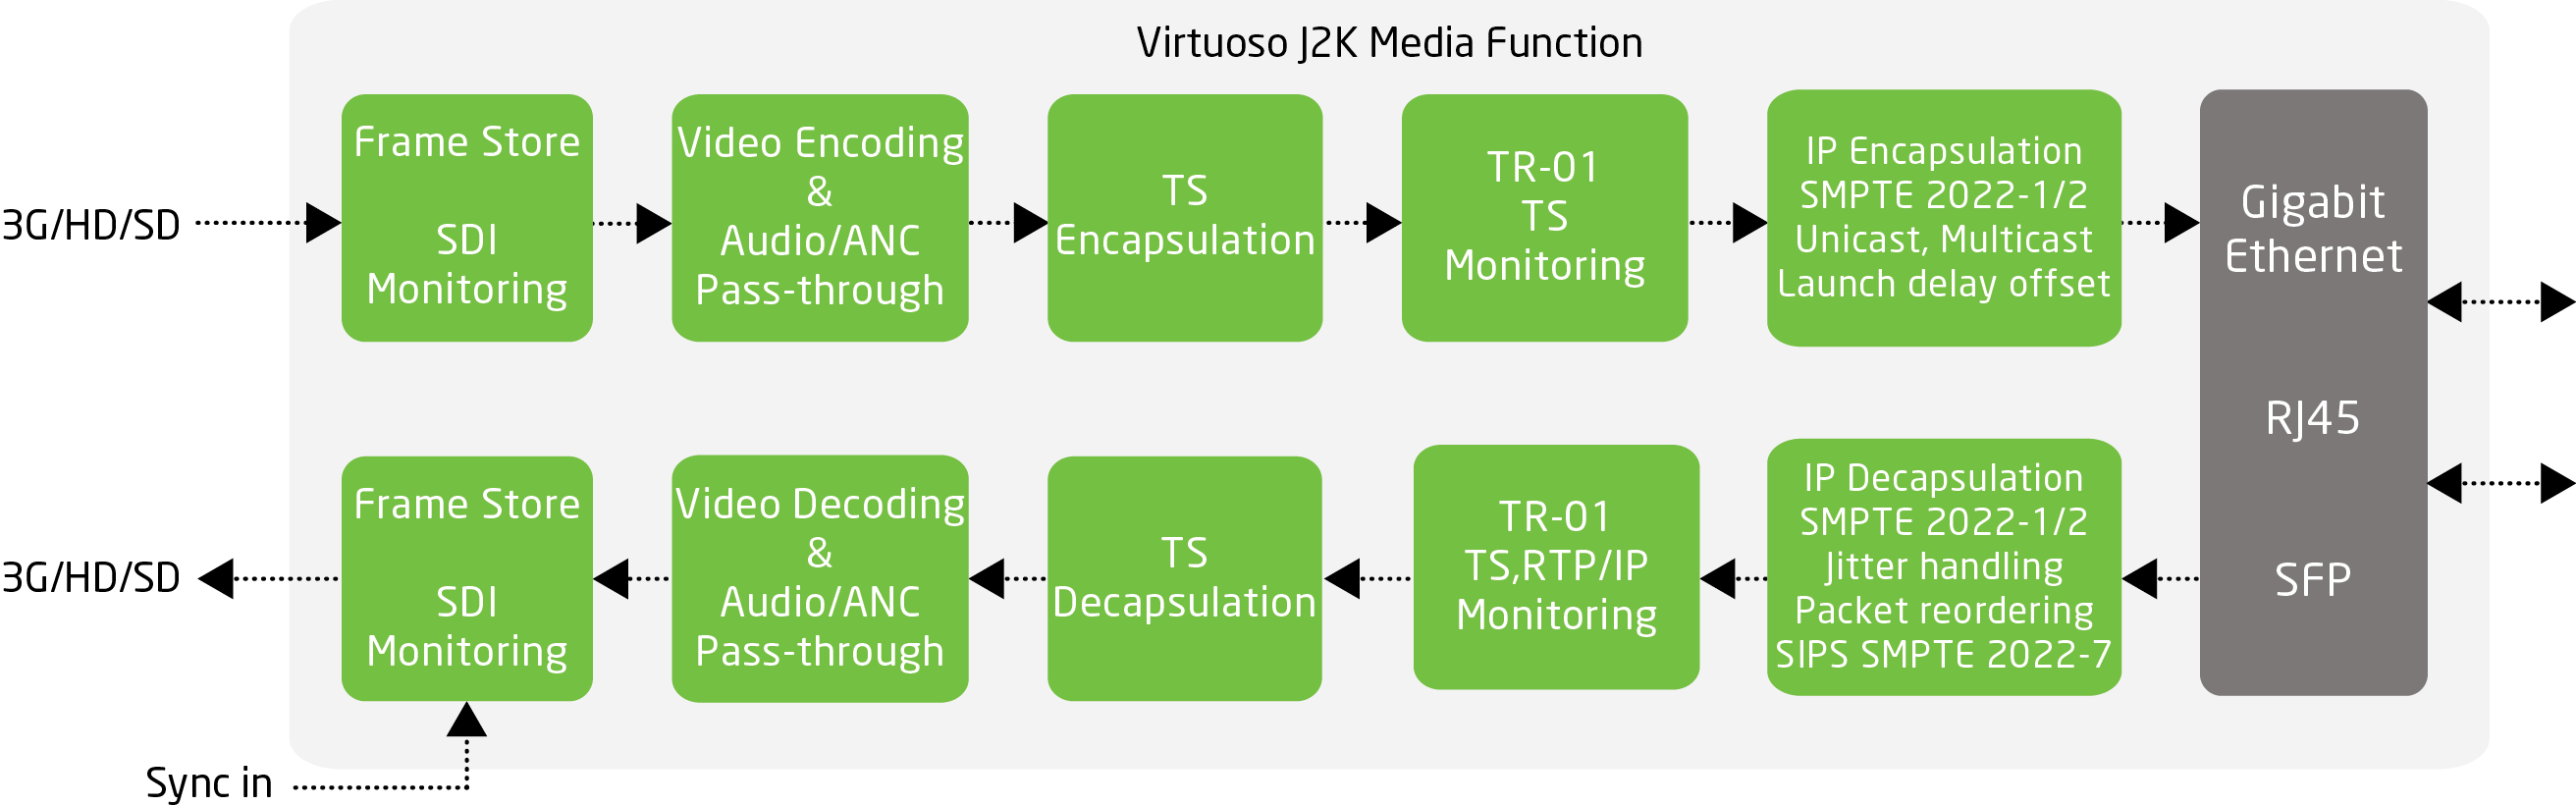 virtuoso_j2k_master_diagram_r1641